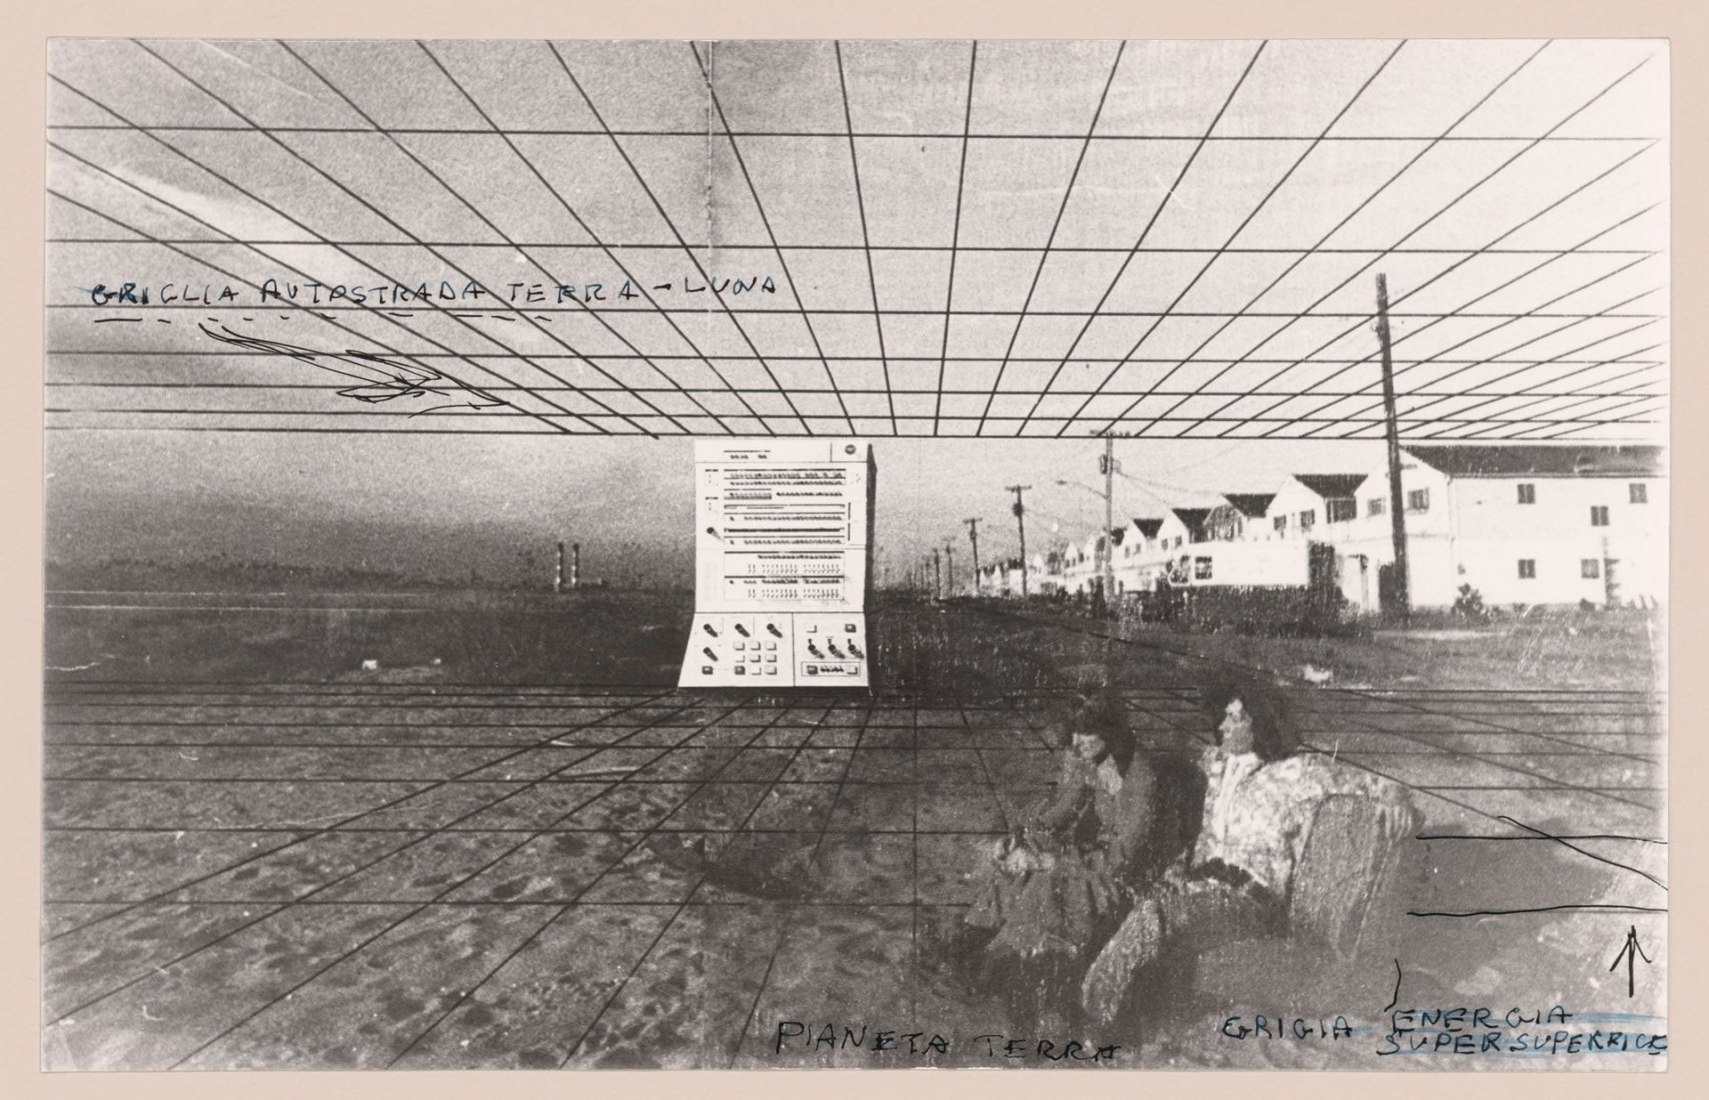 Alessandro Poli. Collage with sketches and notes, combining two projects: the terrestrial grid of the Supersuperficie [Supersurface], and the Autostrada Terra-Luna [interplanetary highway] overhead, 1972. Fonds Alessandro Poli, CCA. © Alessandro Poli